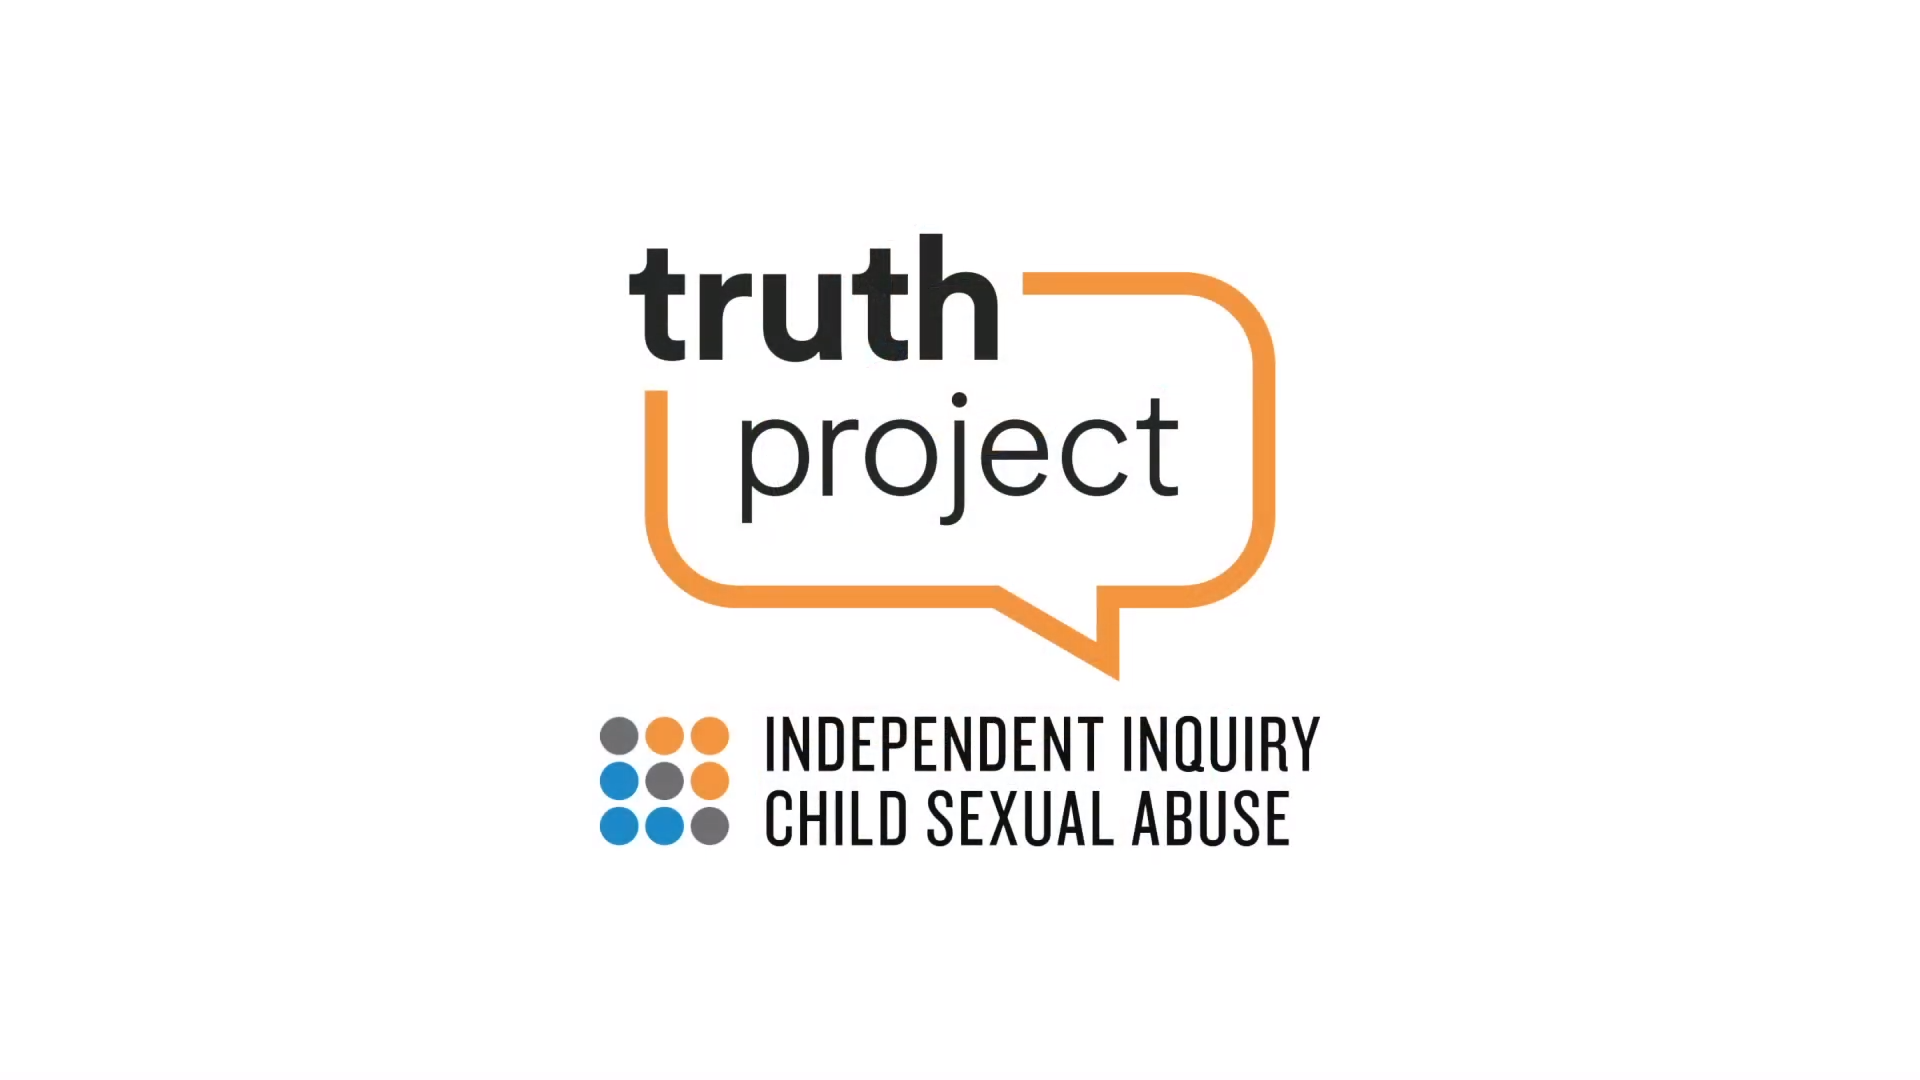 logo for the truth project and the independent inquiry into child sexual abuse